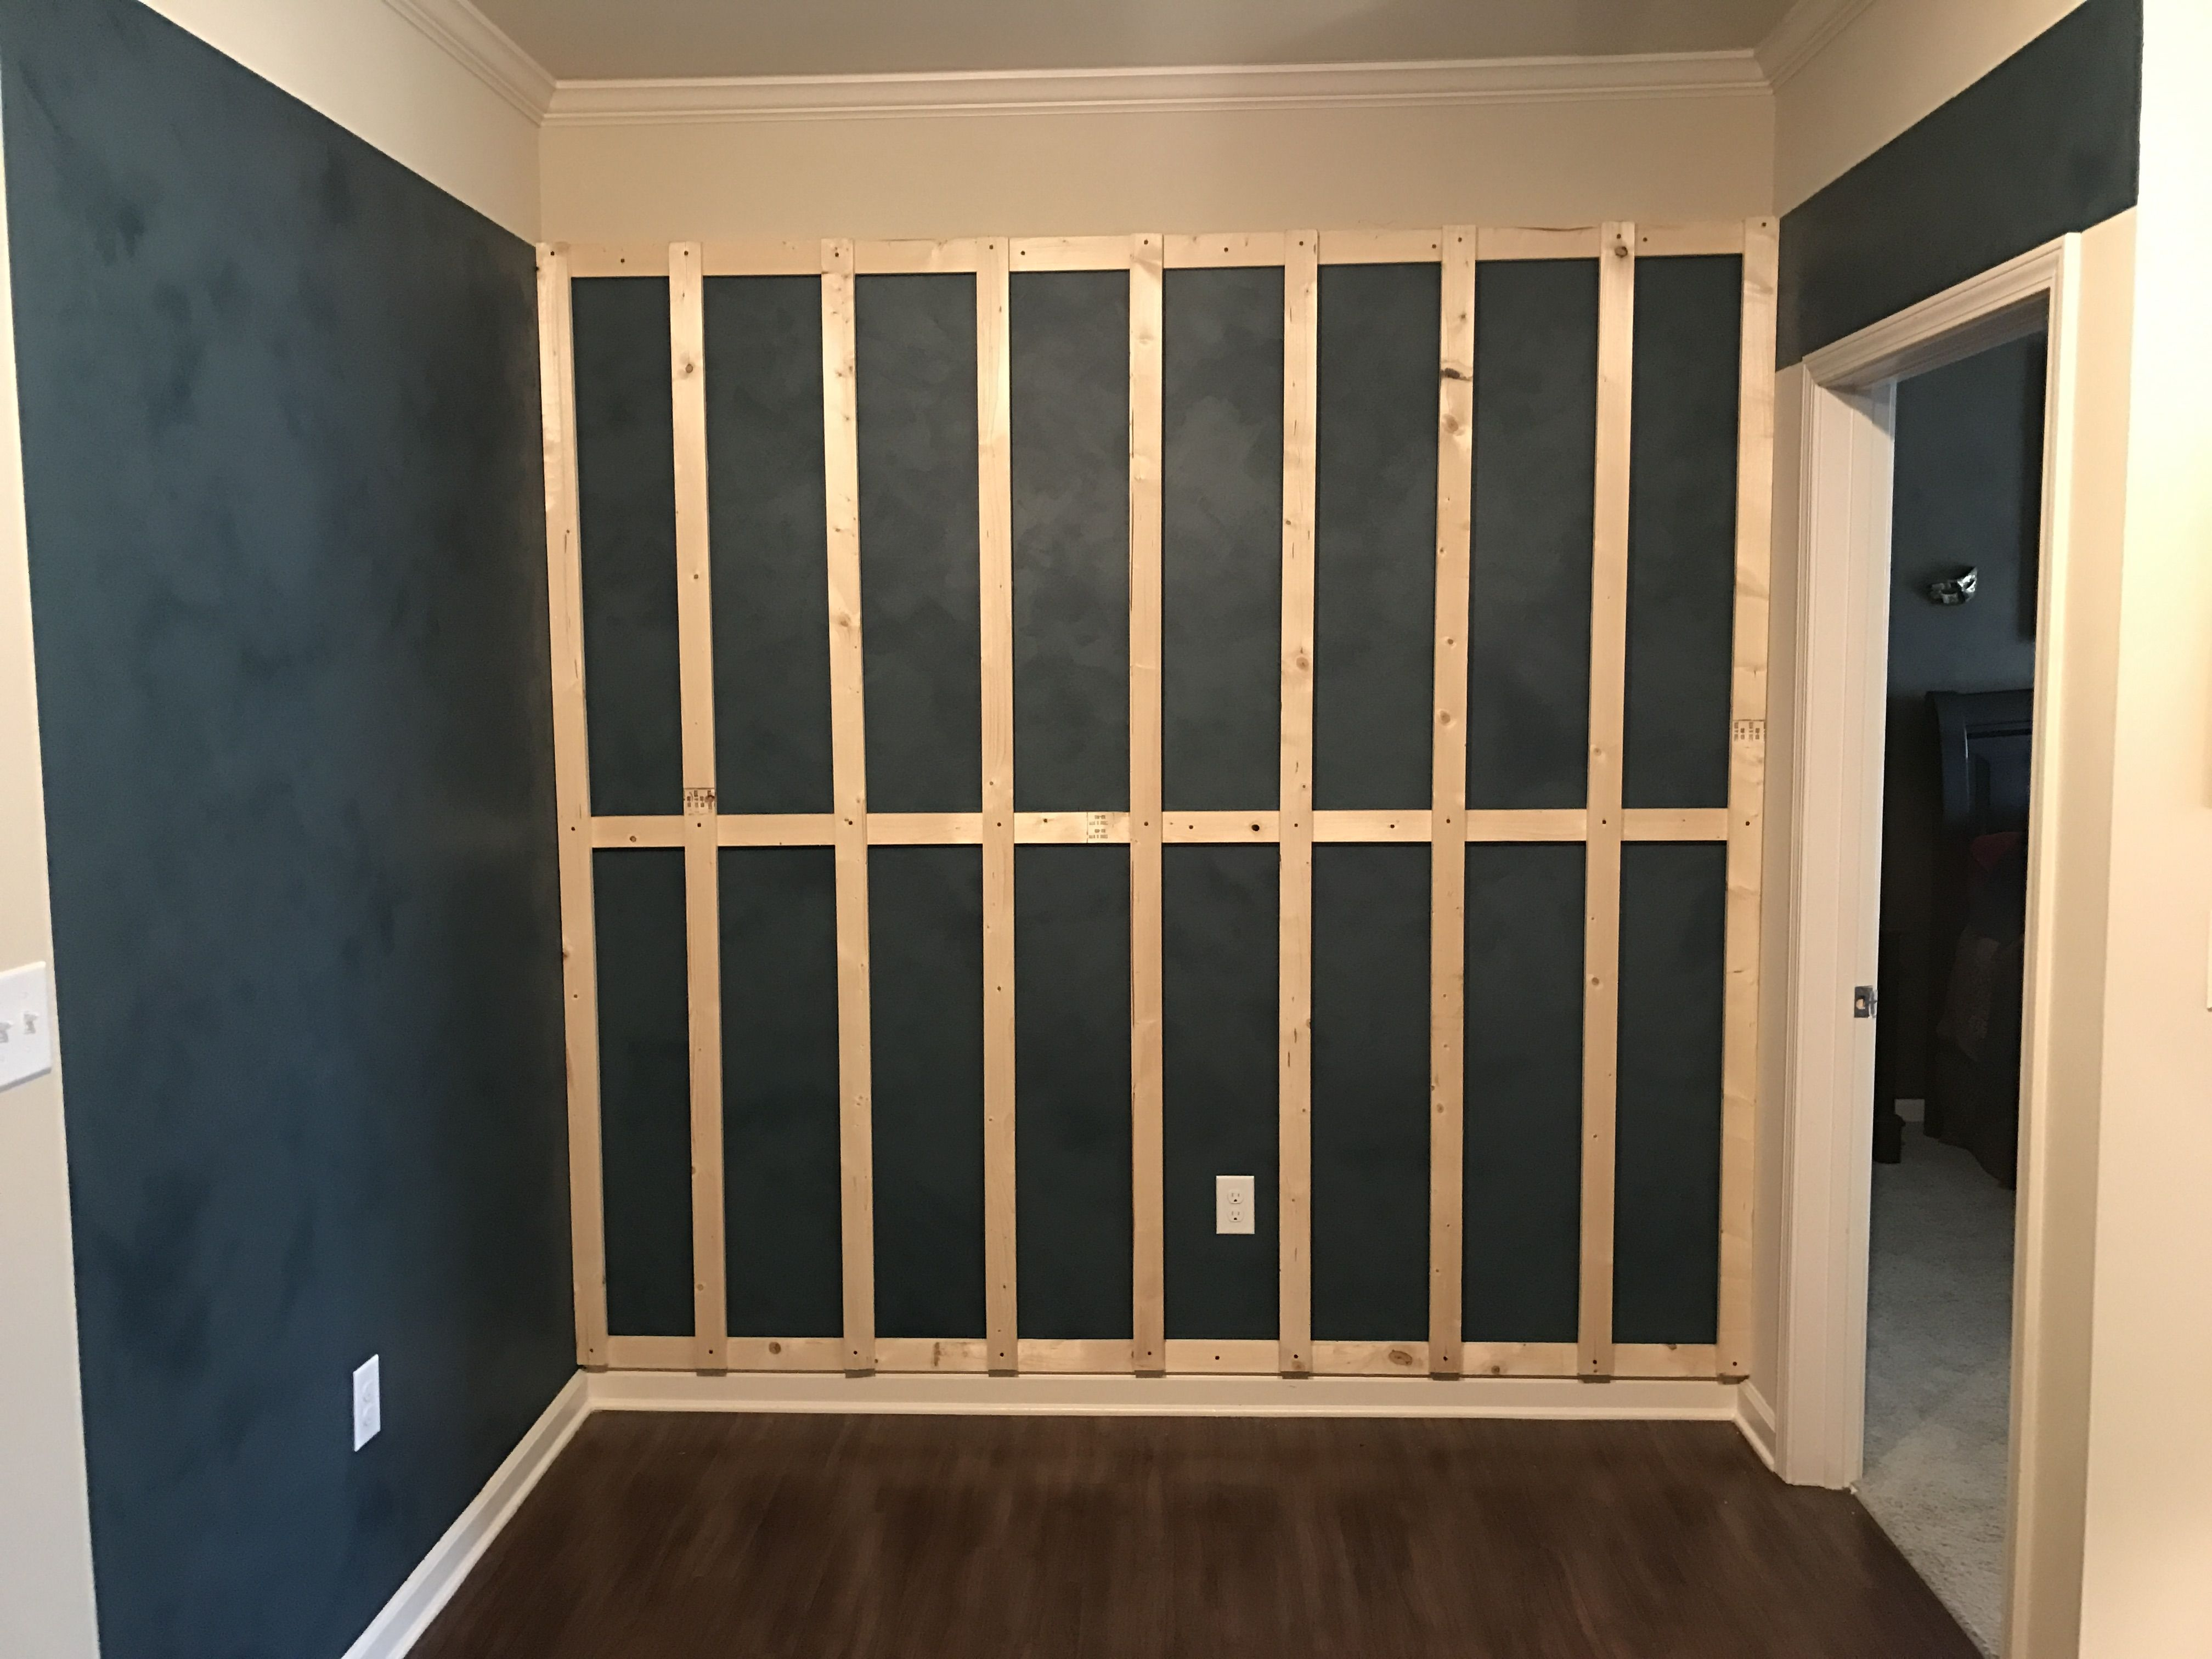 Apply 1 X 3 X 5 8 Southern Yellow Pine Furring Strips Horizontally To The Wall Secure To At Least 3 Or 4 Stud Walls Apartment Upgrade Southern Yellow Pine